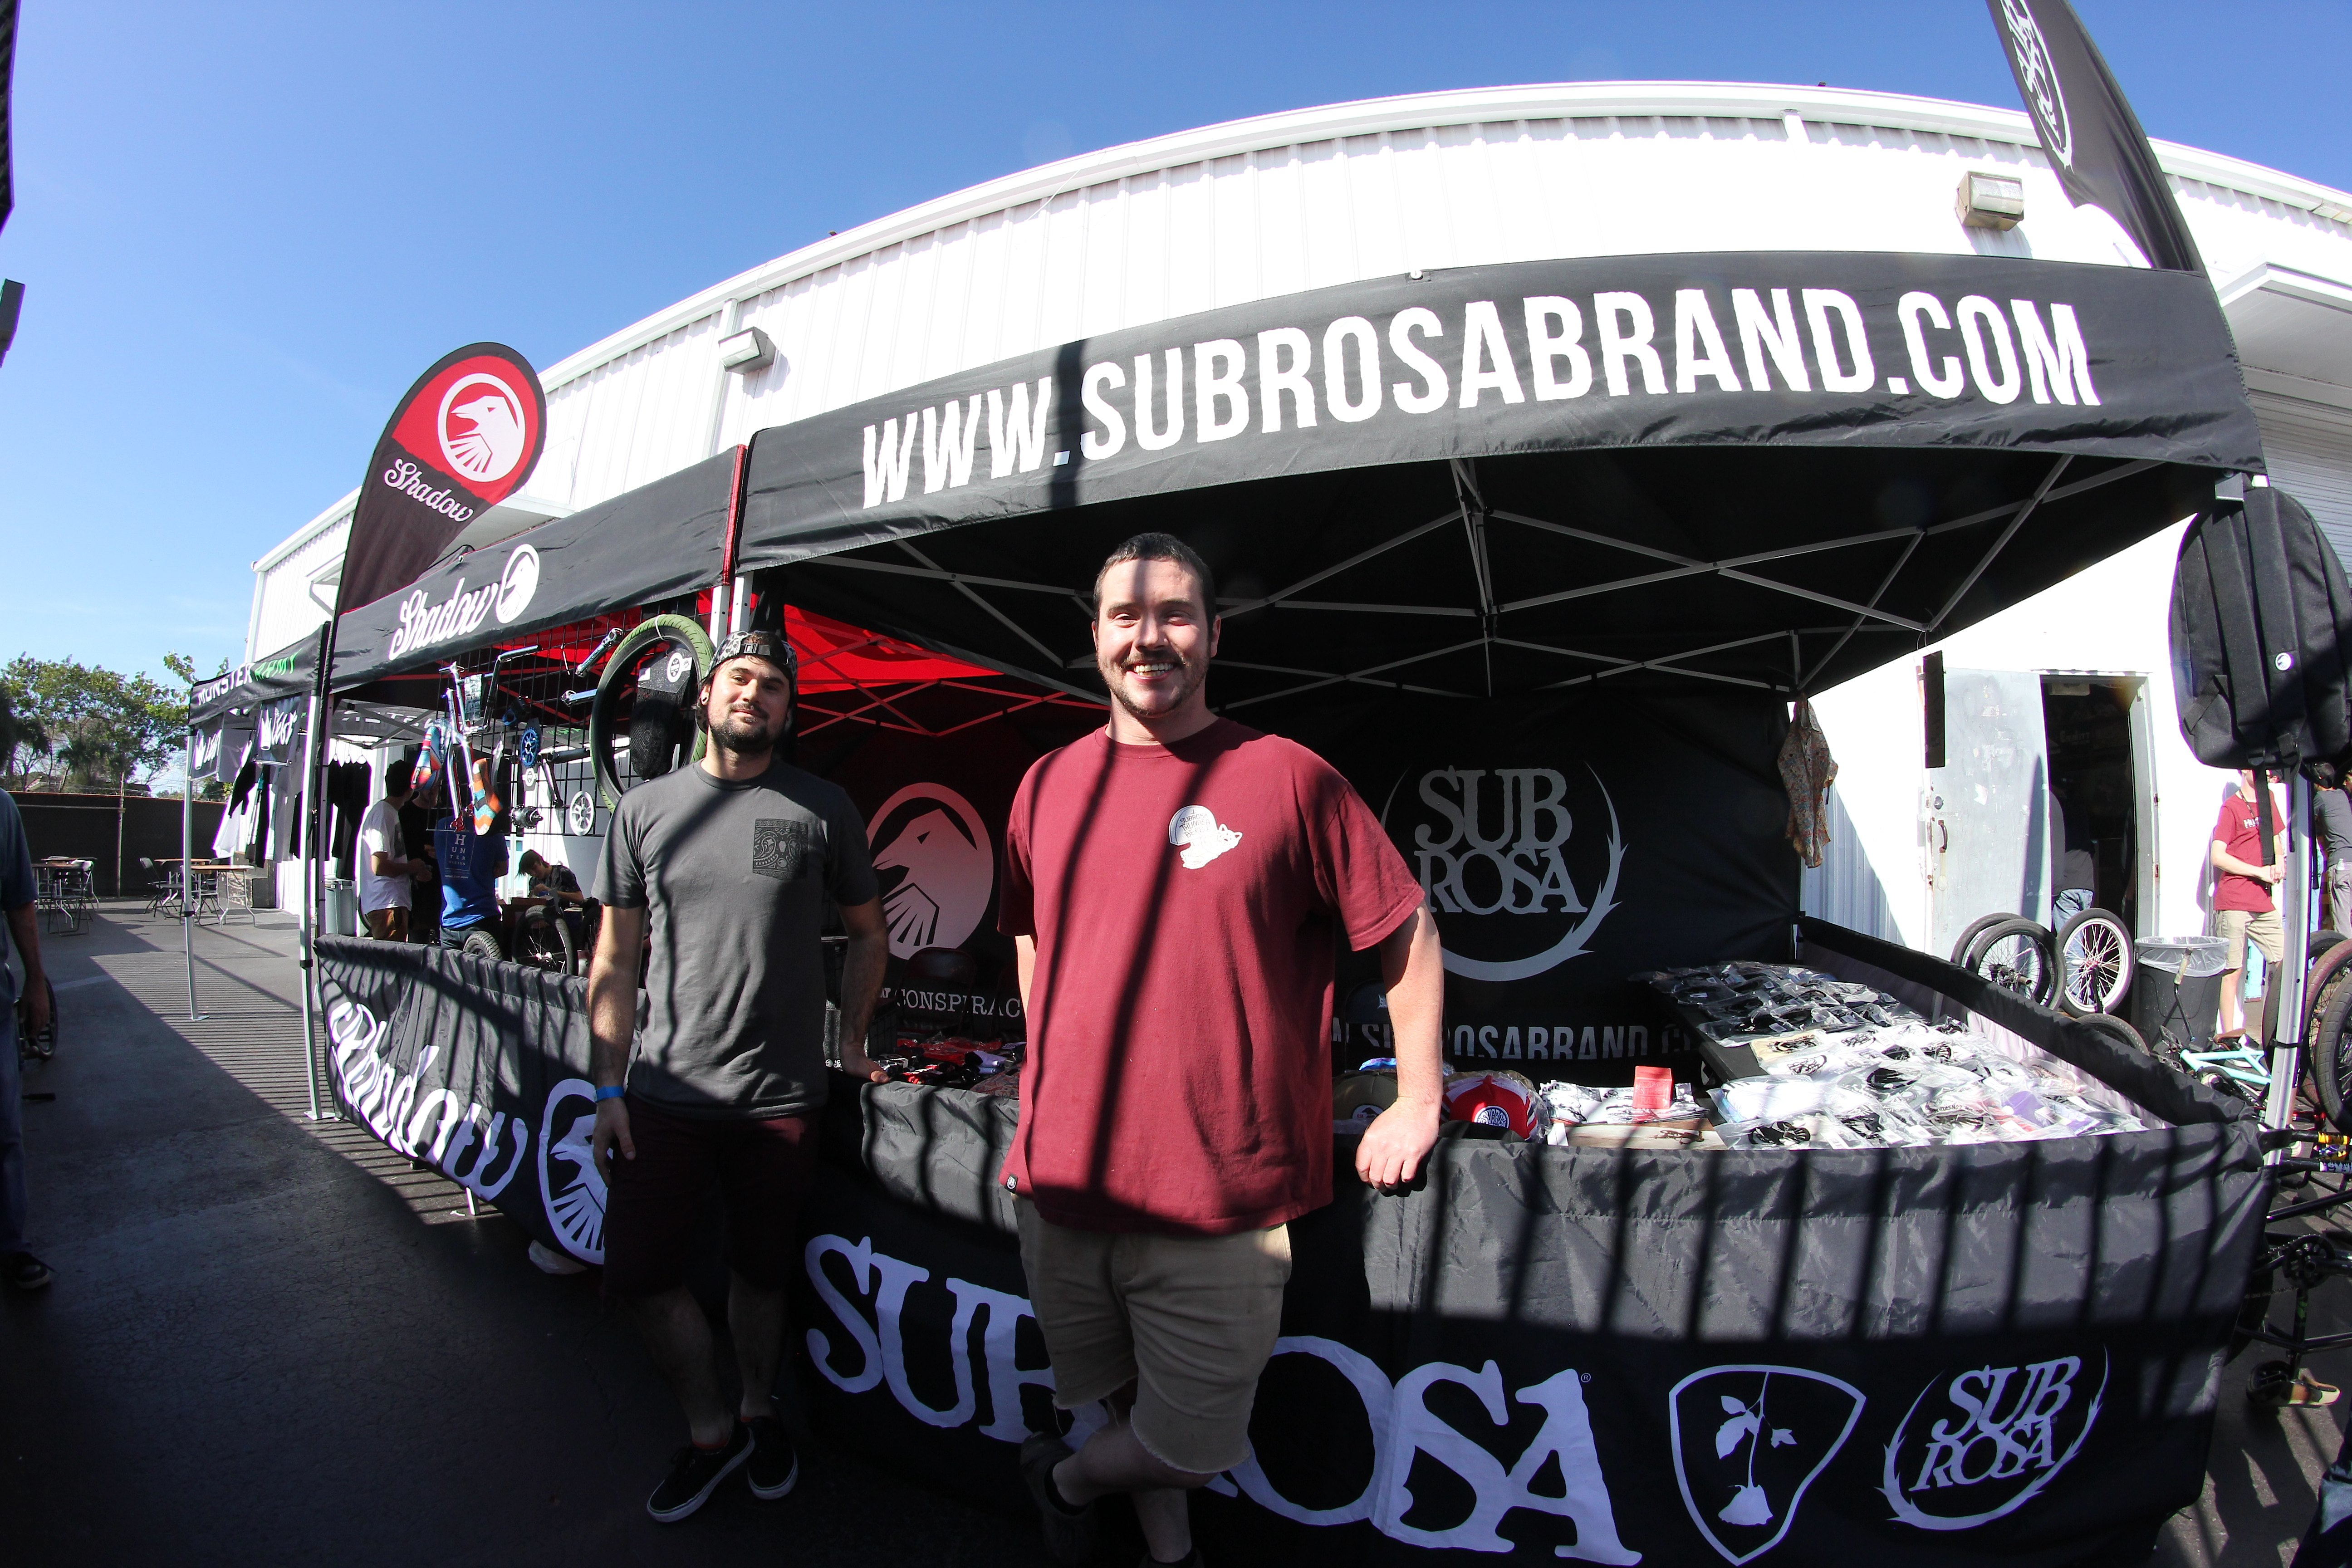 Josh and Cole from Sparky's USA. Always on hand, lending a hand. Thanks to Shadow and Subrosa for the support.